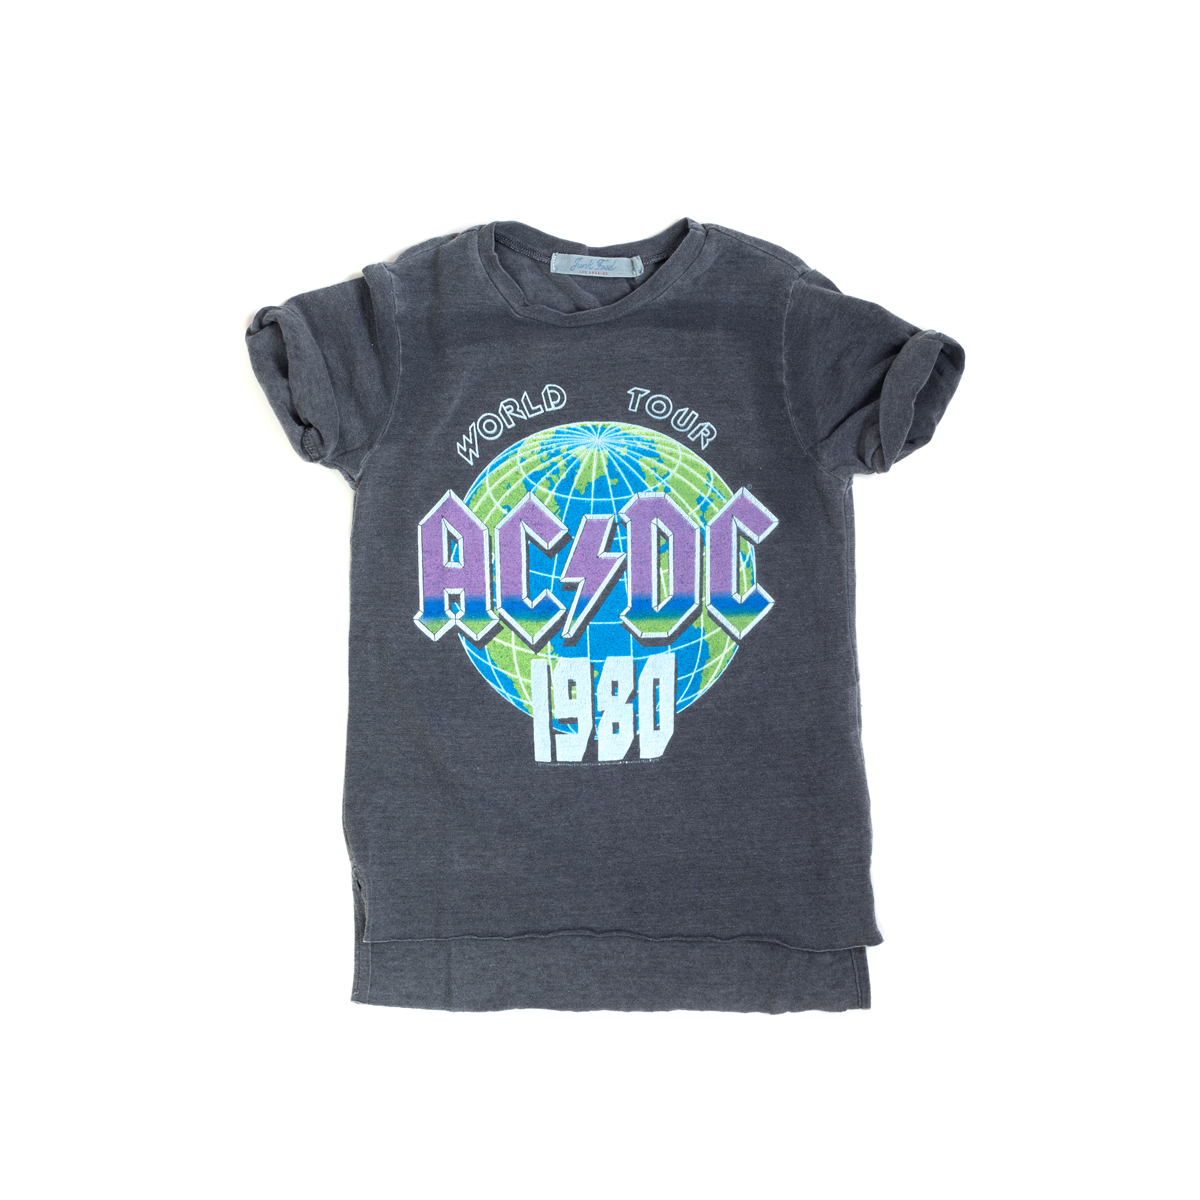 AC/DC Kids World Tour 1980 Globe T-Shirt